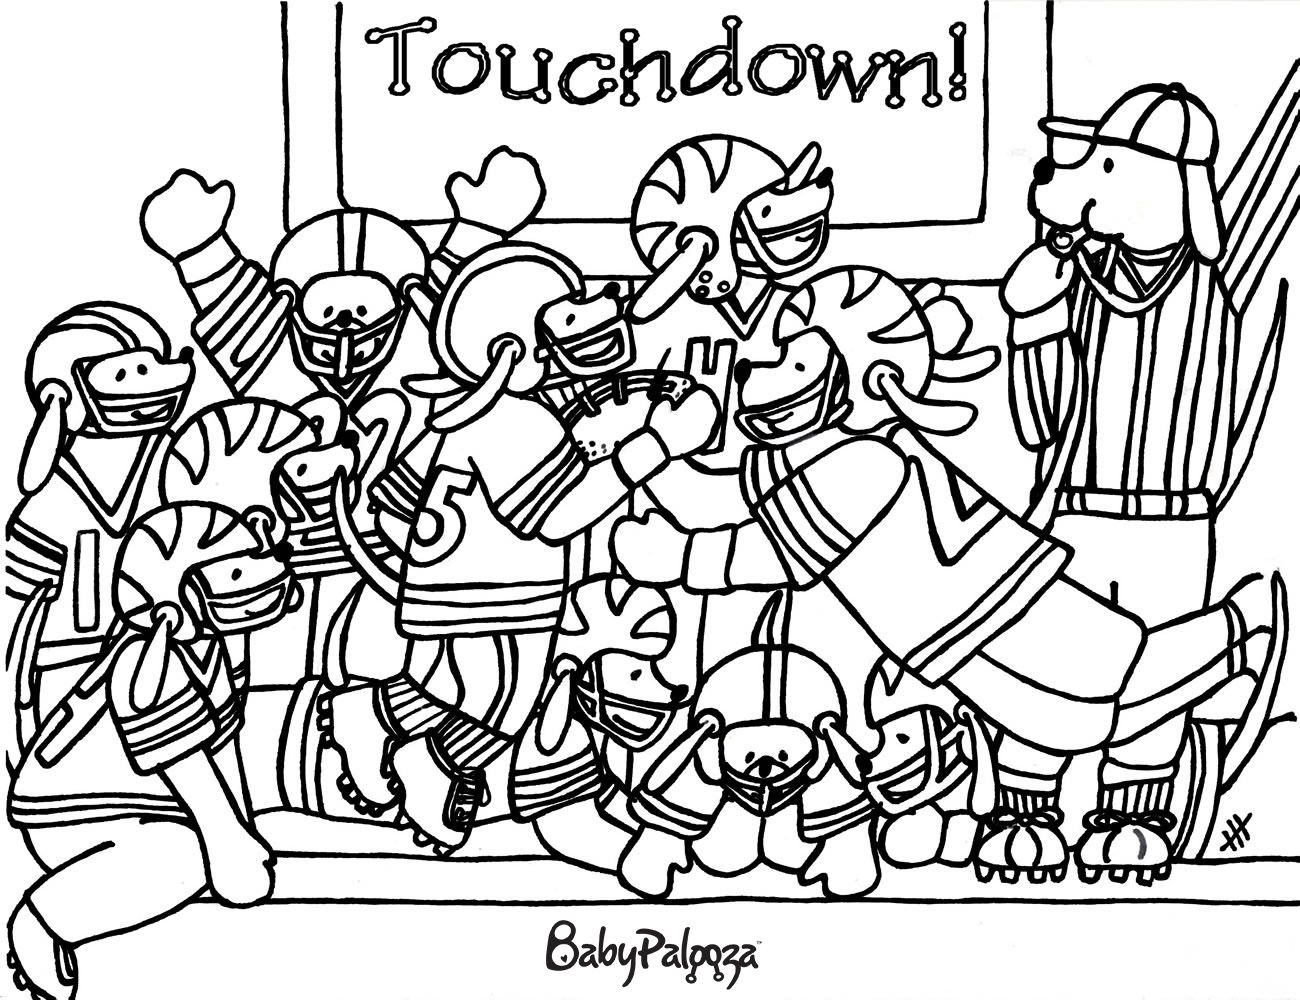 Puppy bowl coloring page for the kids to color during your ...